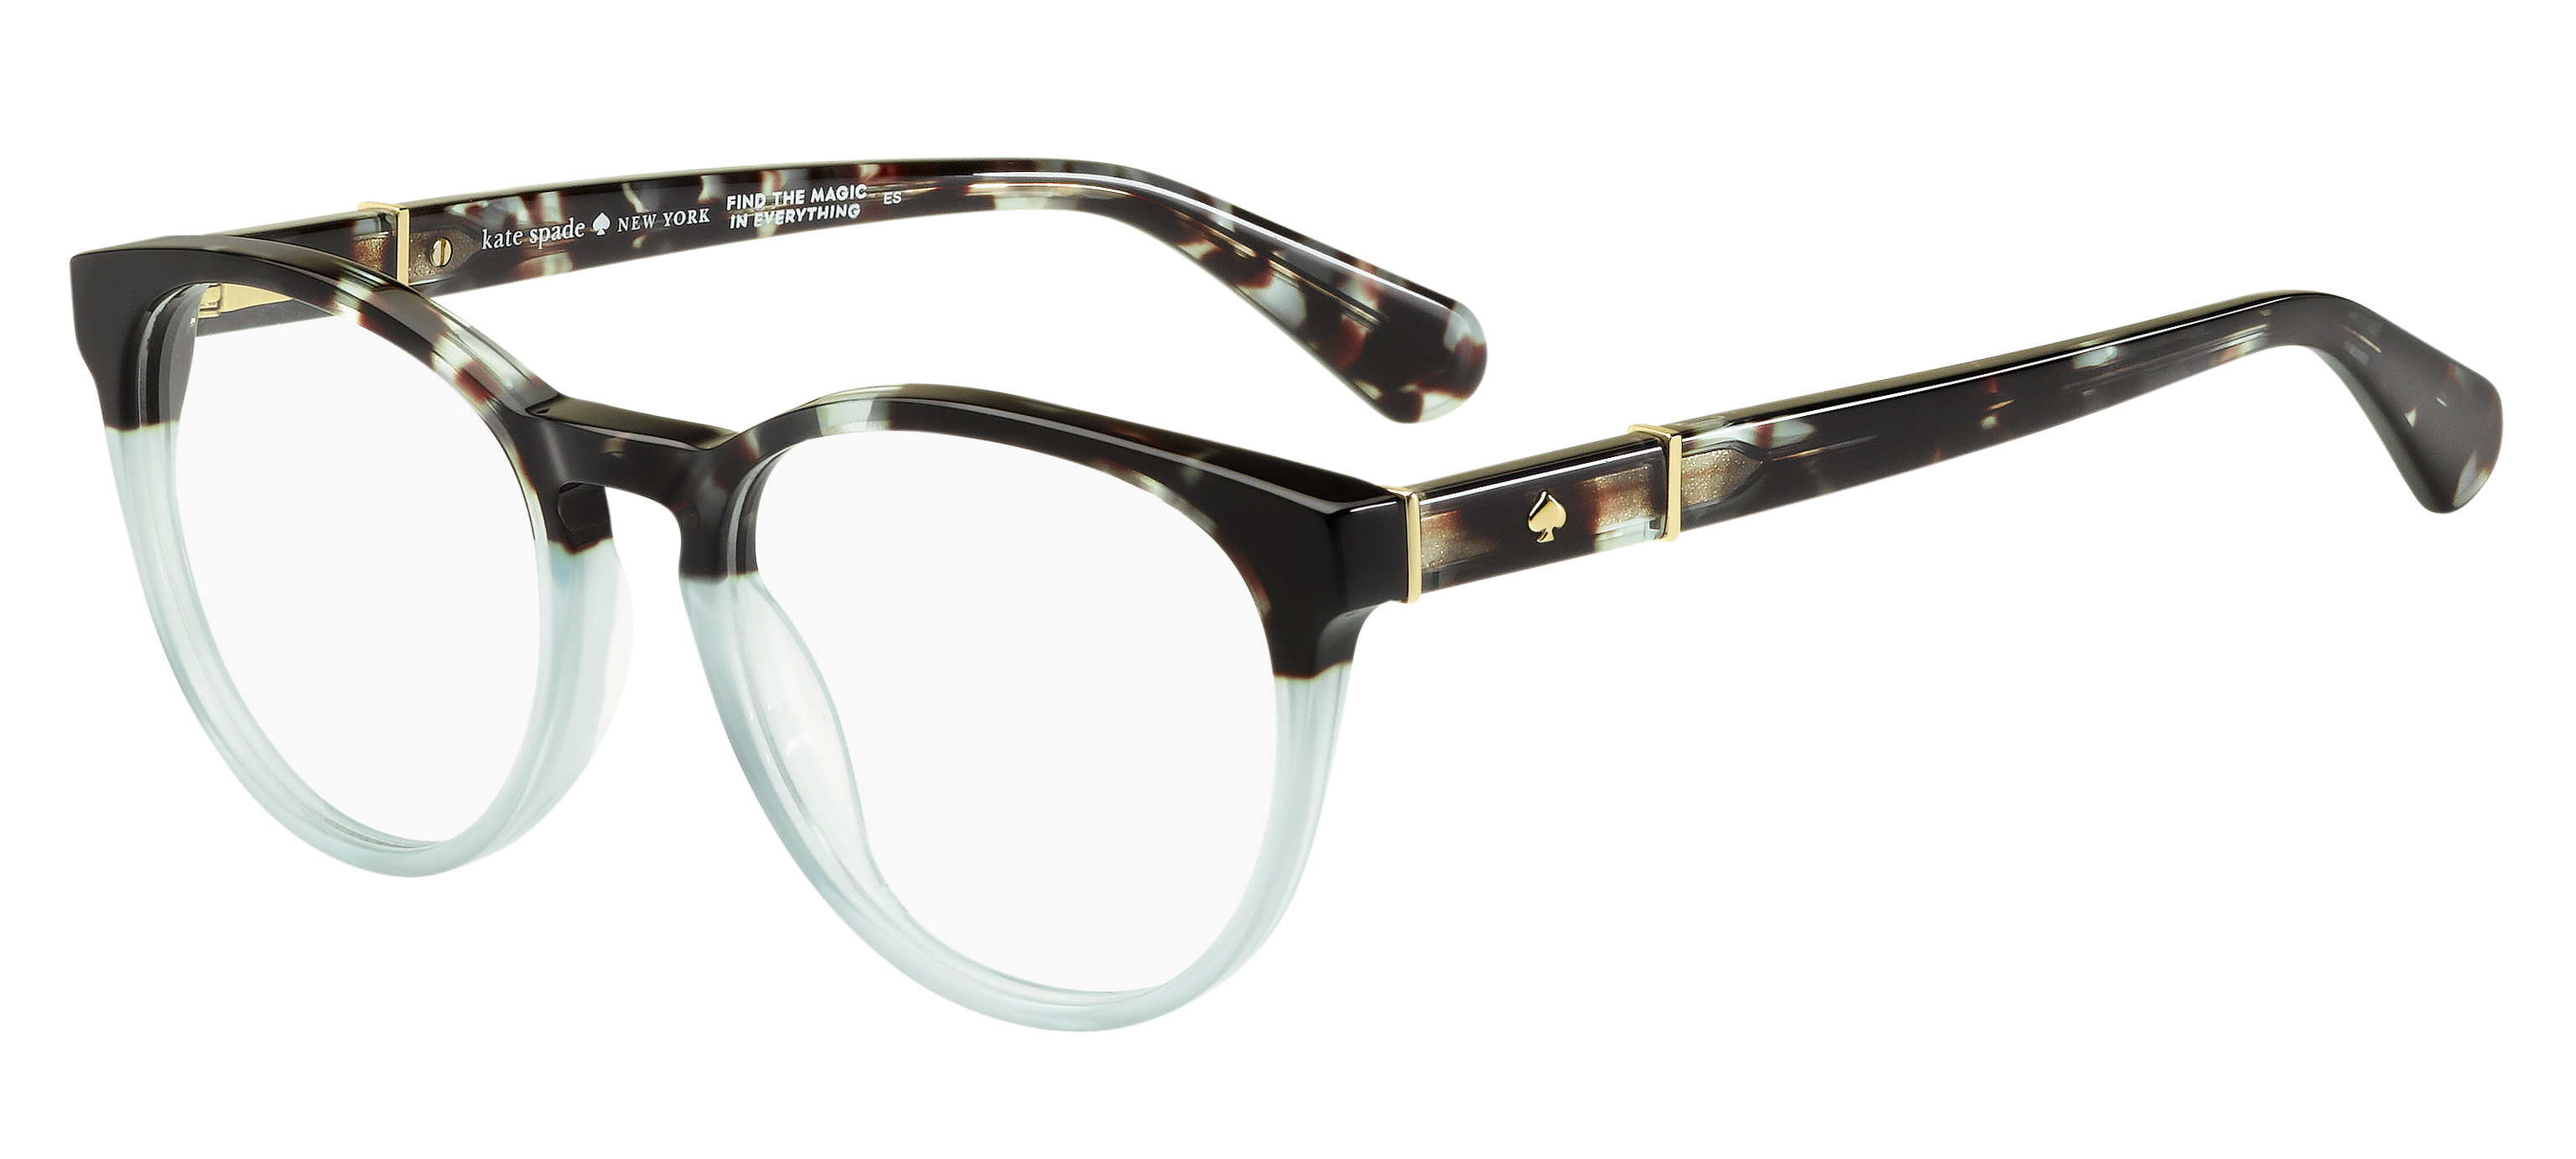 0ee2e2acd41 3 Optical Frames Trends From Safilo Fall Winter 2017 Collections ...